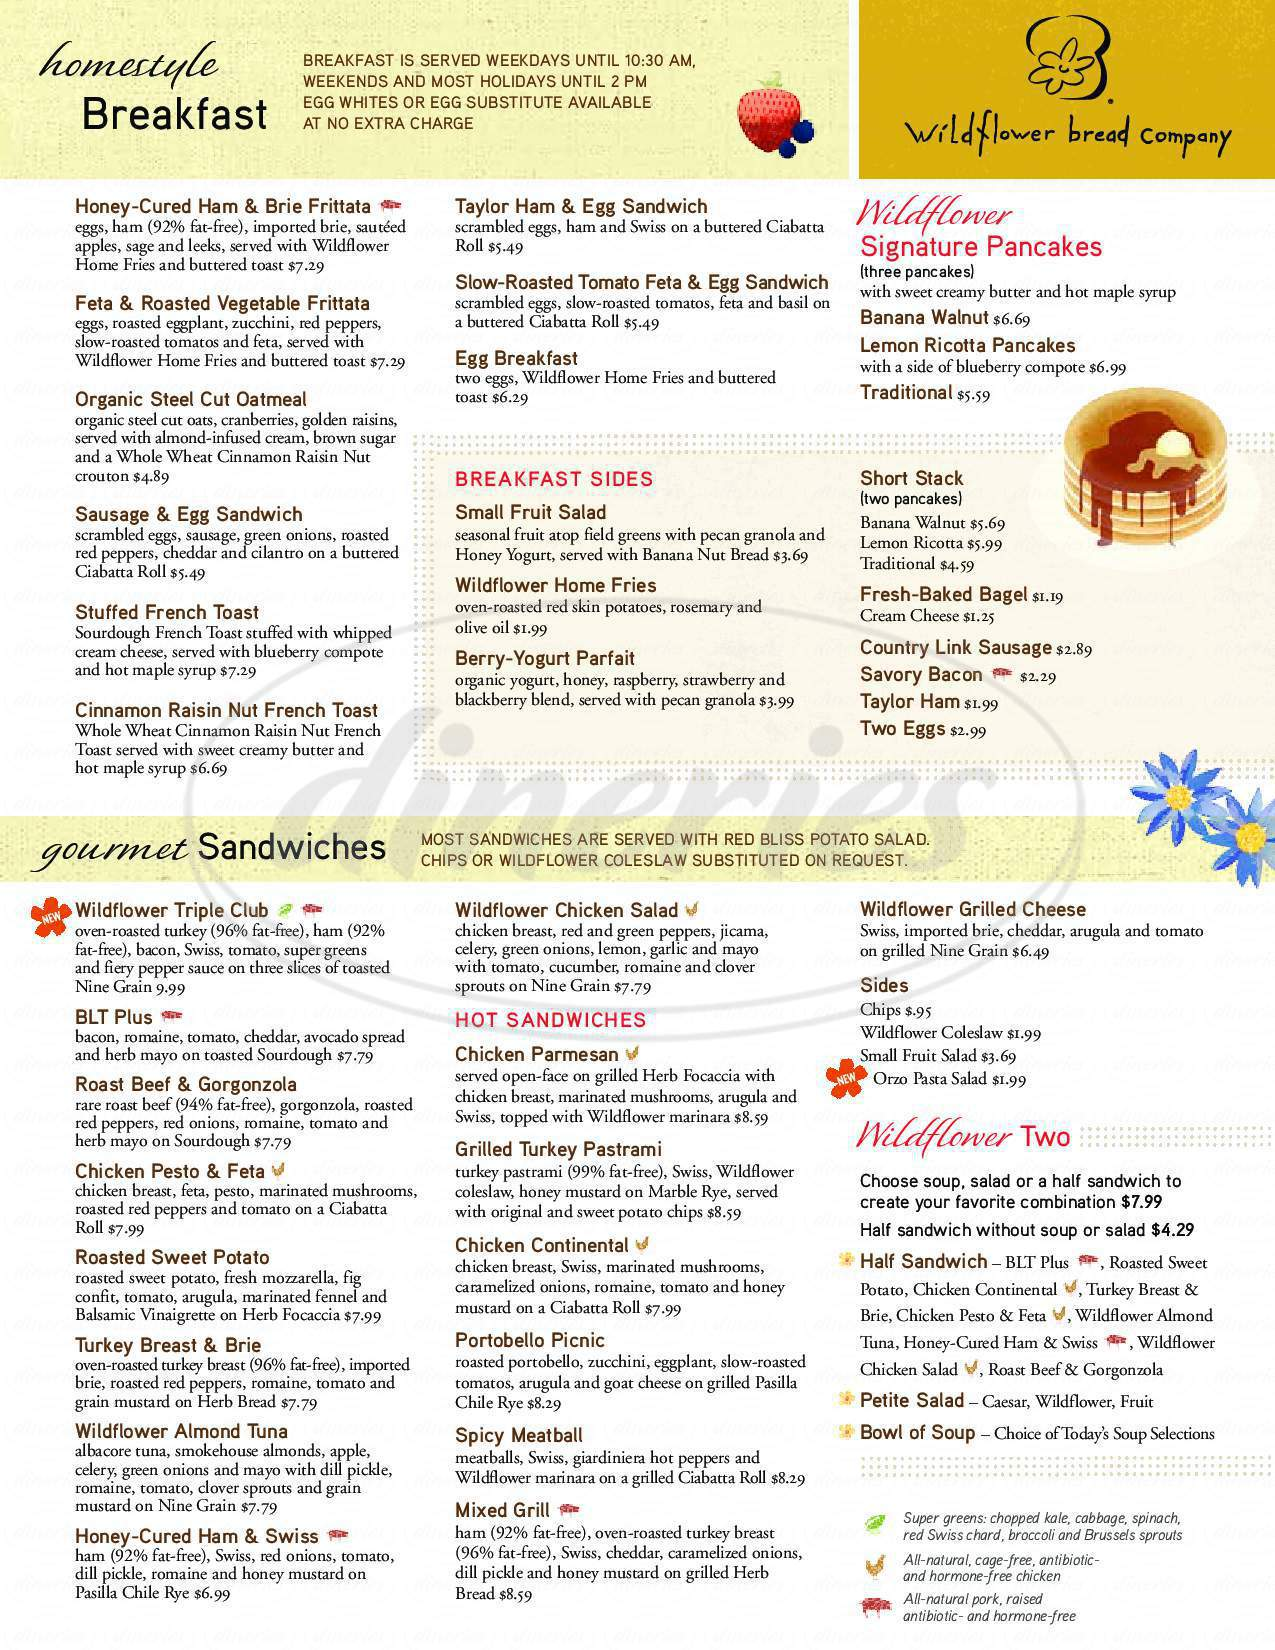 menu for Wildflower Bread Company